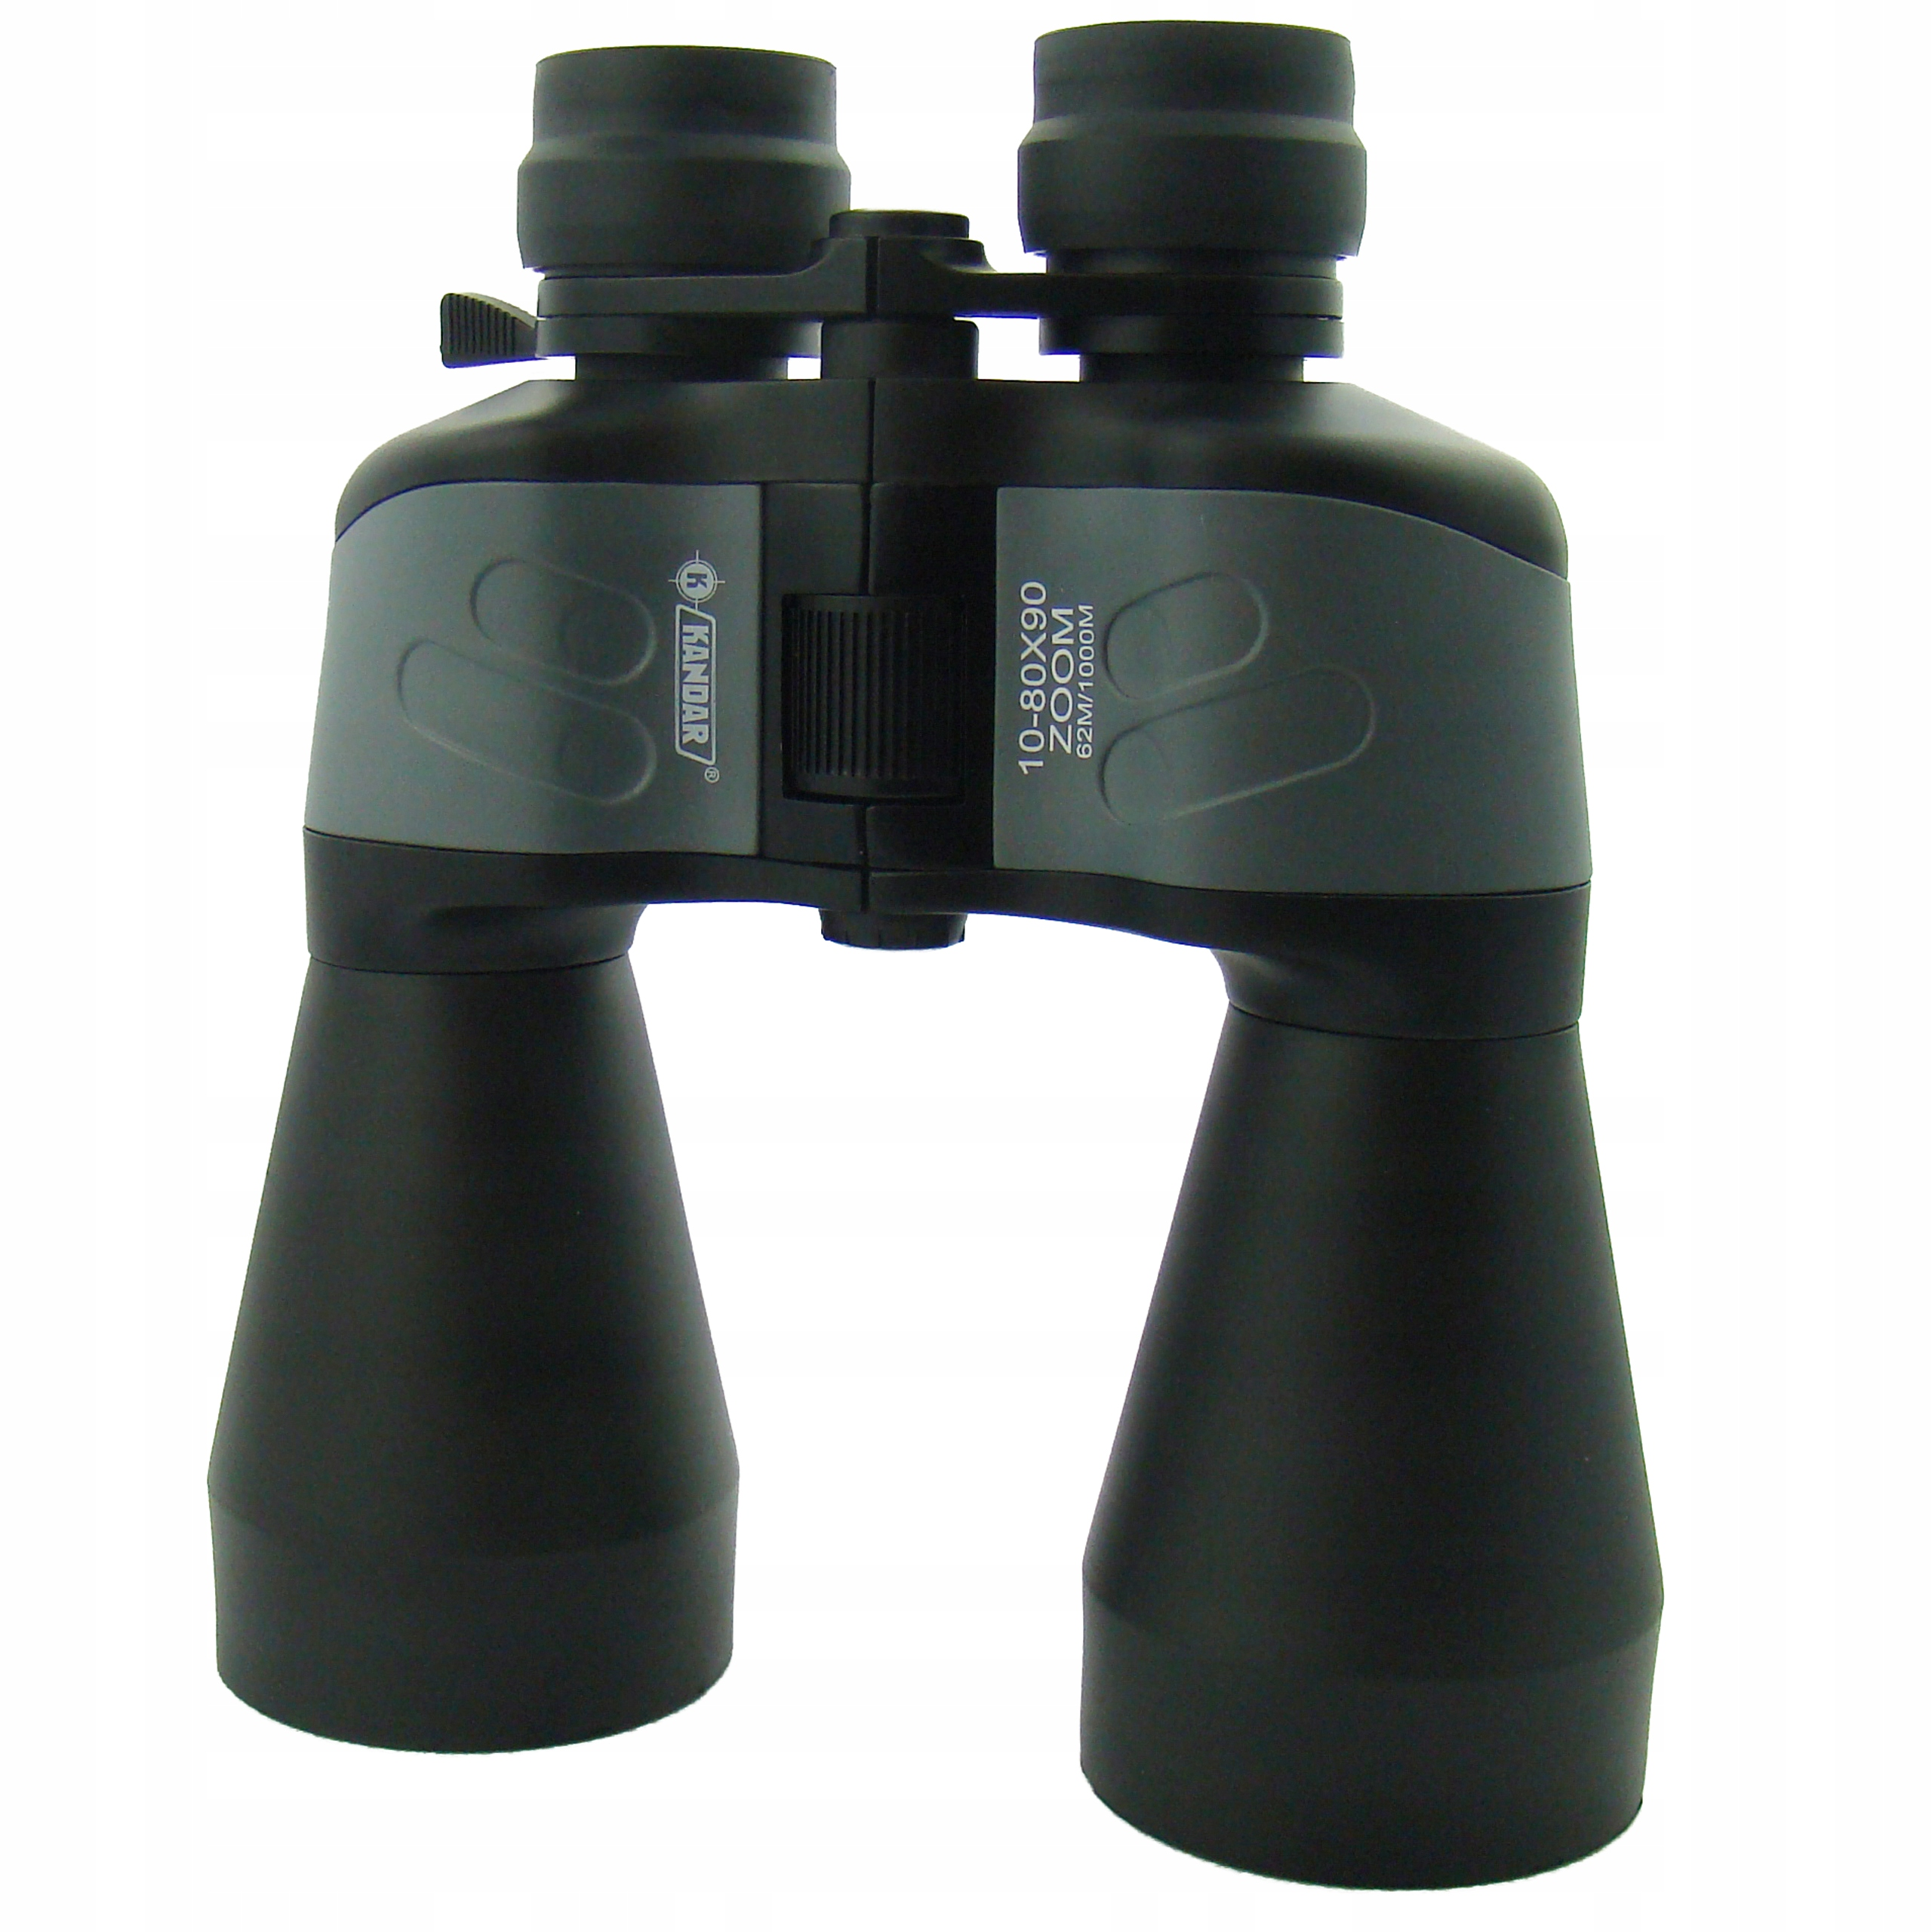 Item BINOCULARS, KANDAR 10-80x90 ZOOM, GLASS OPTICS